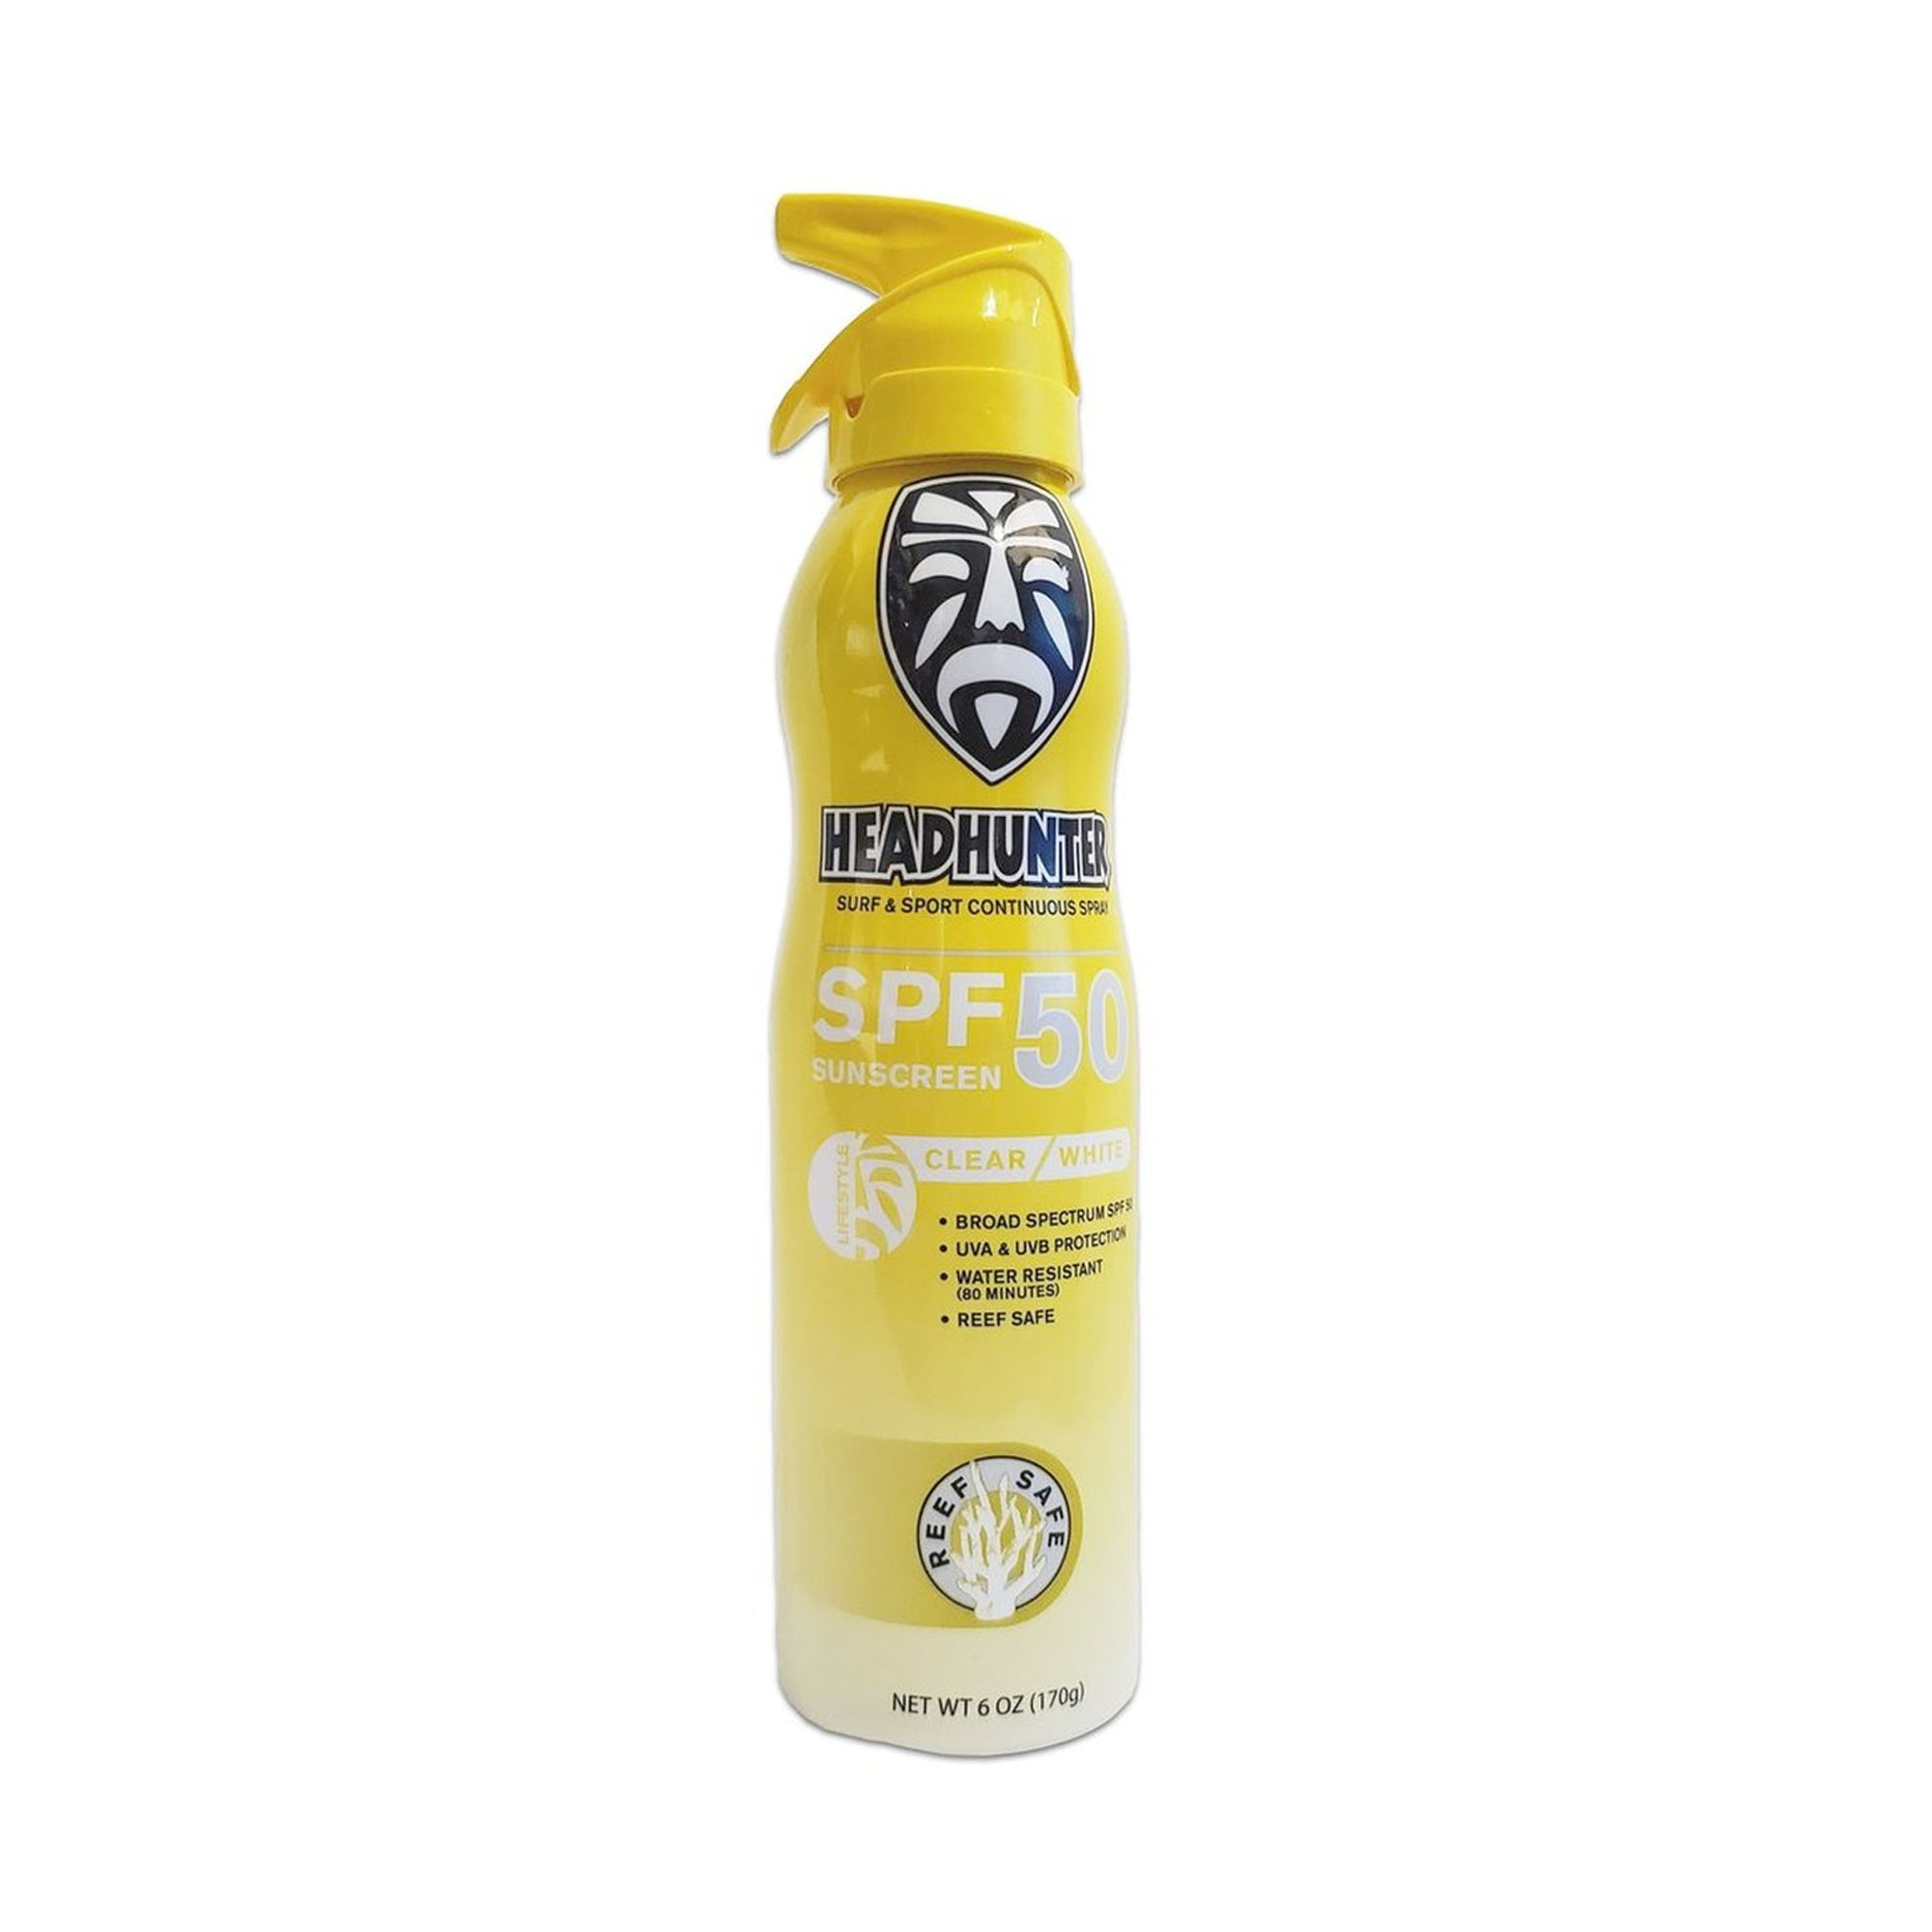 Headhunter Sunscreen Spray - SPF 50